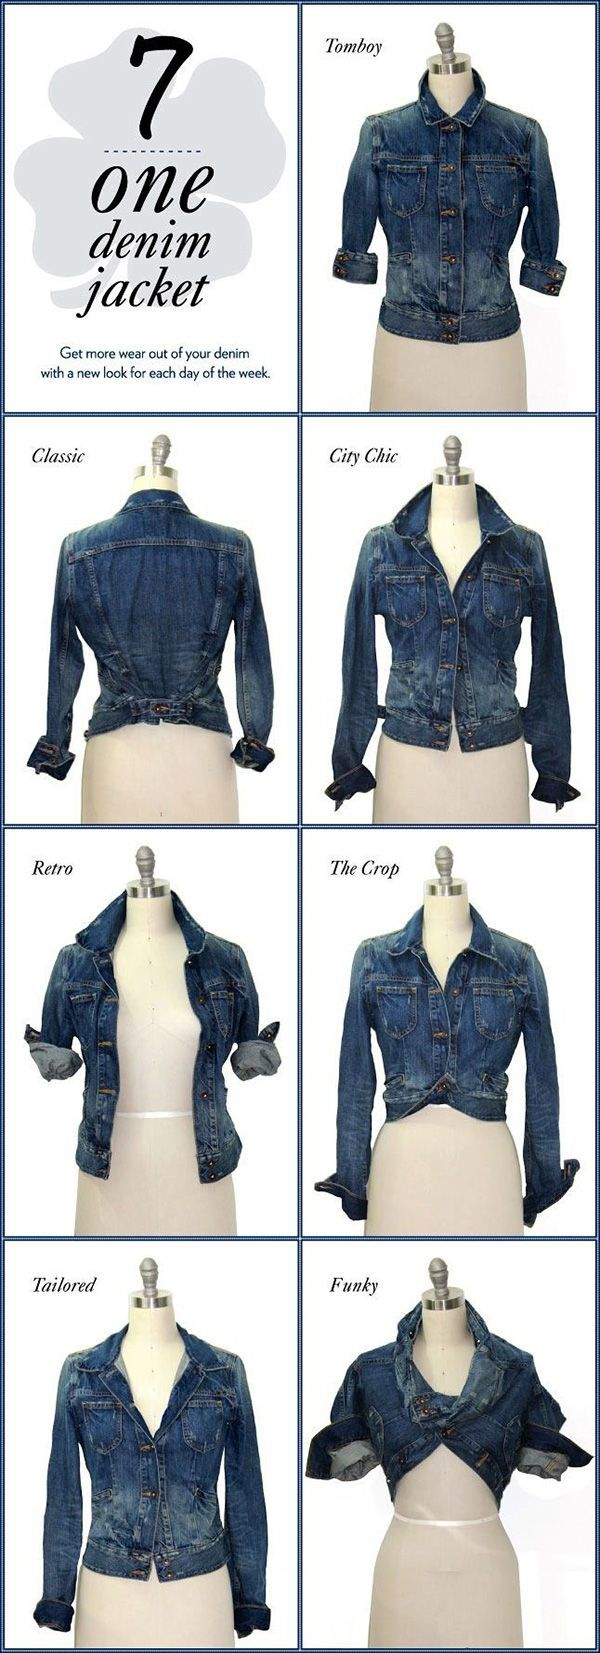 just by changing the way the jacket looks slightly, you can change the vibe of your entire outfit